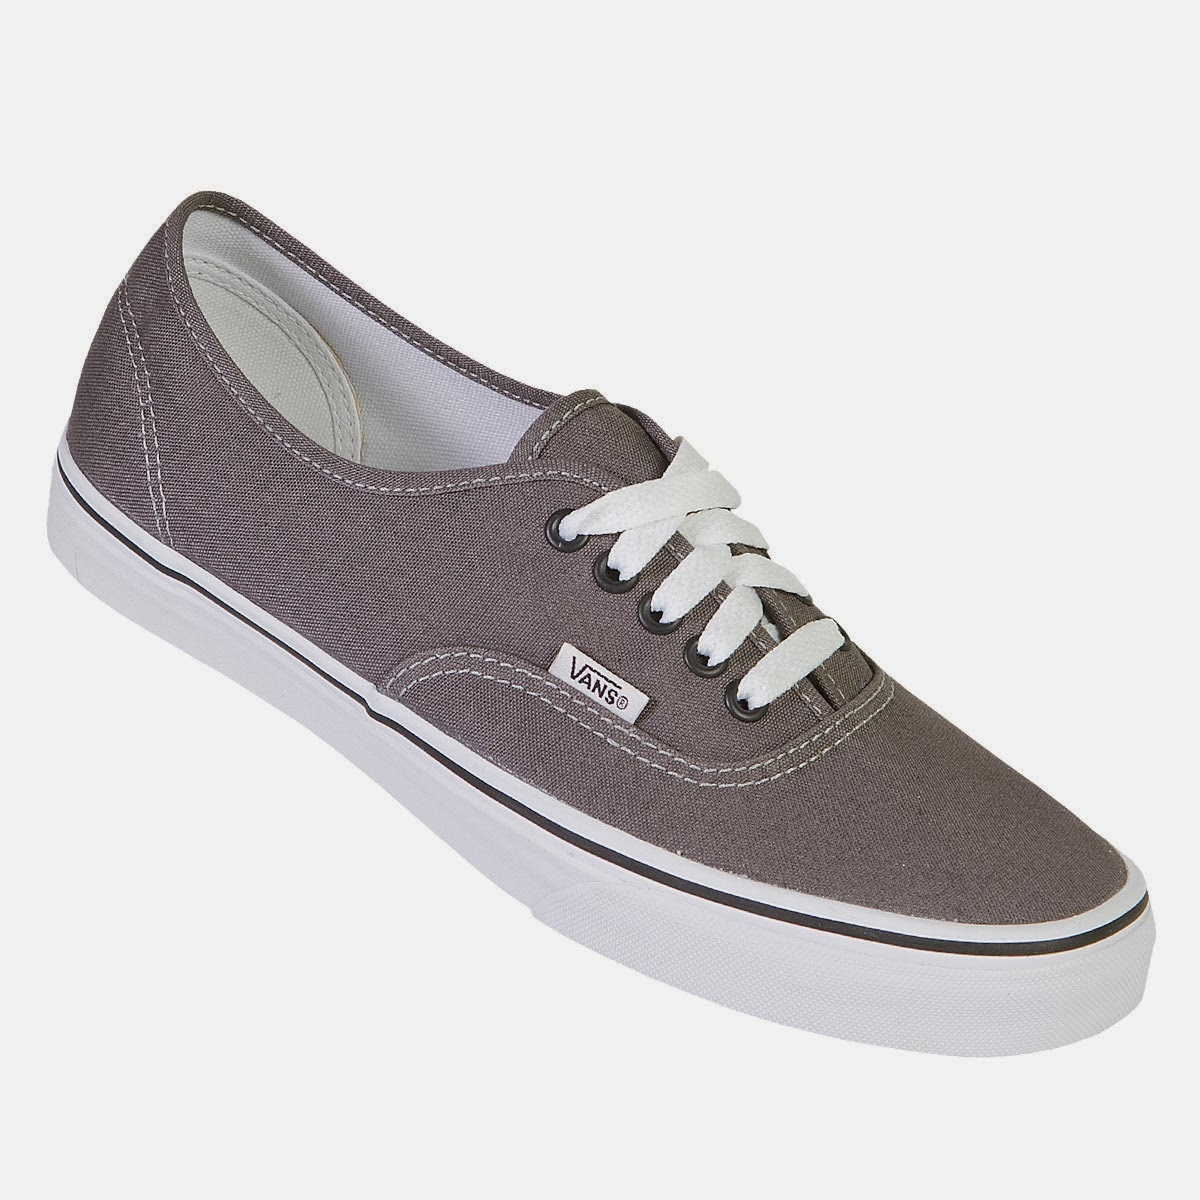 Tenis Vans Authentic - HD wallpaper